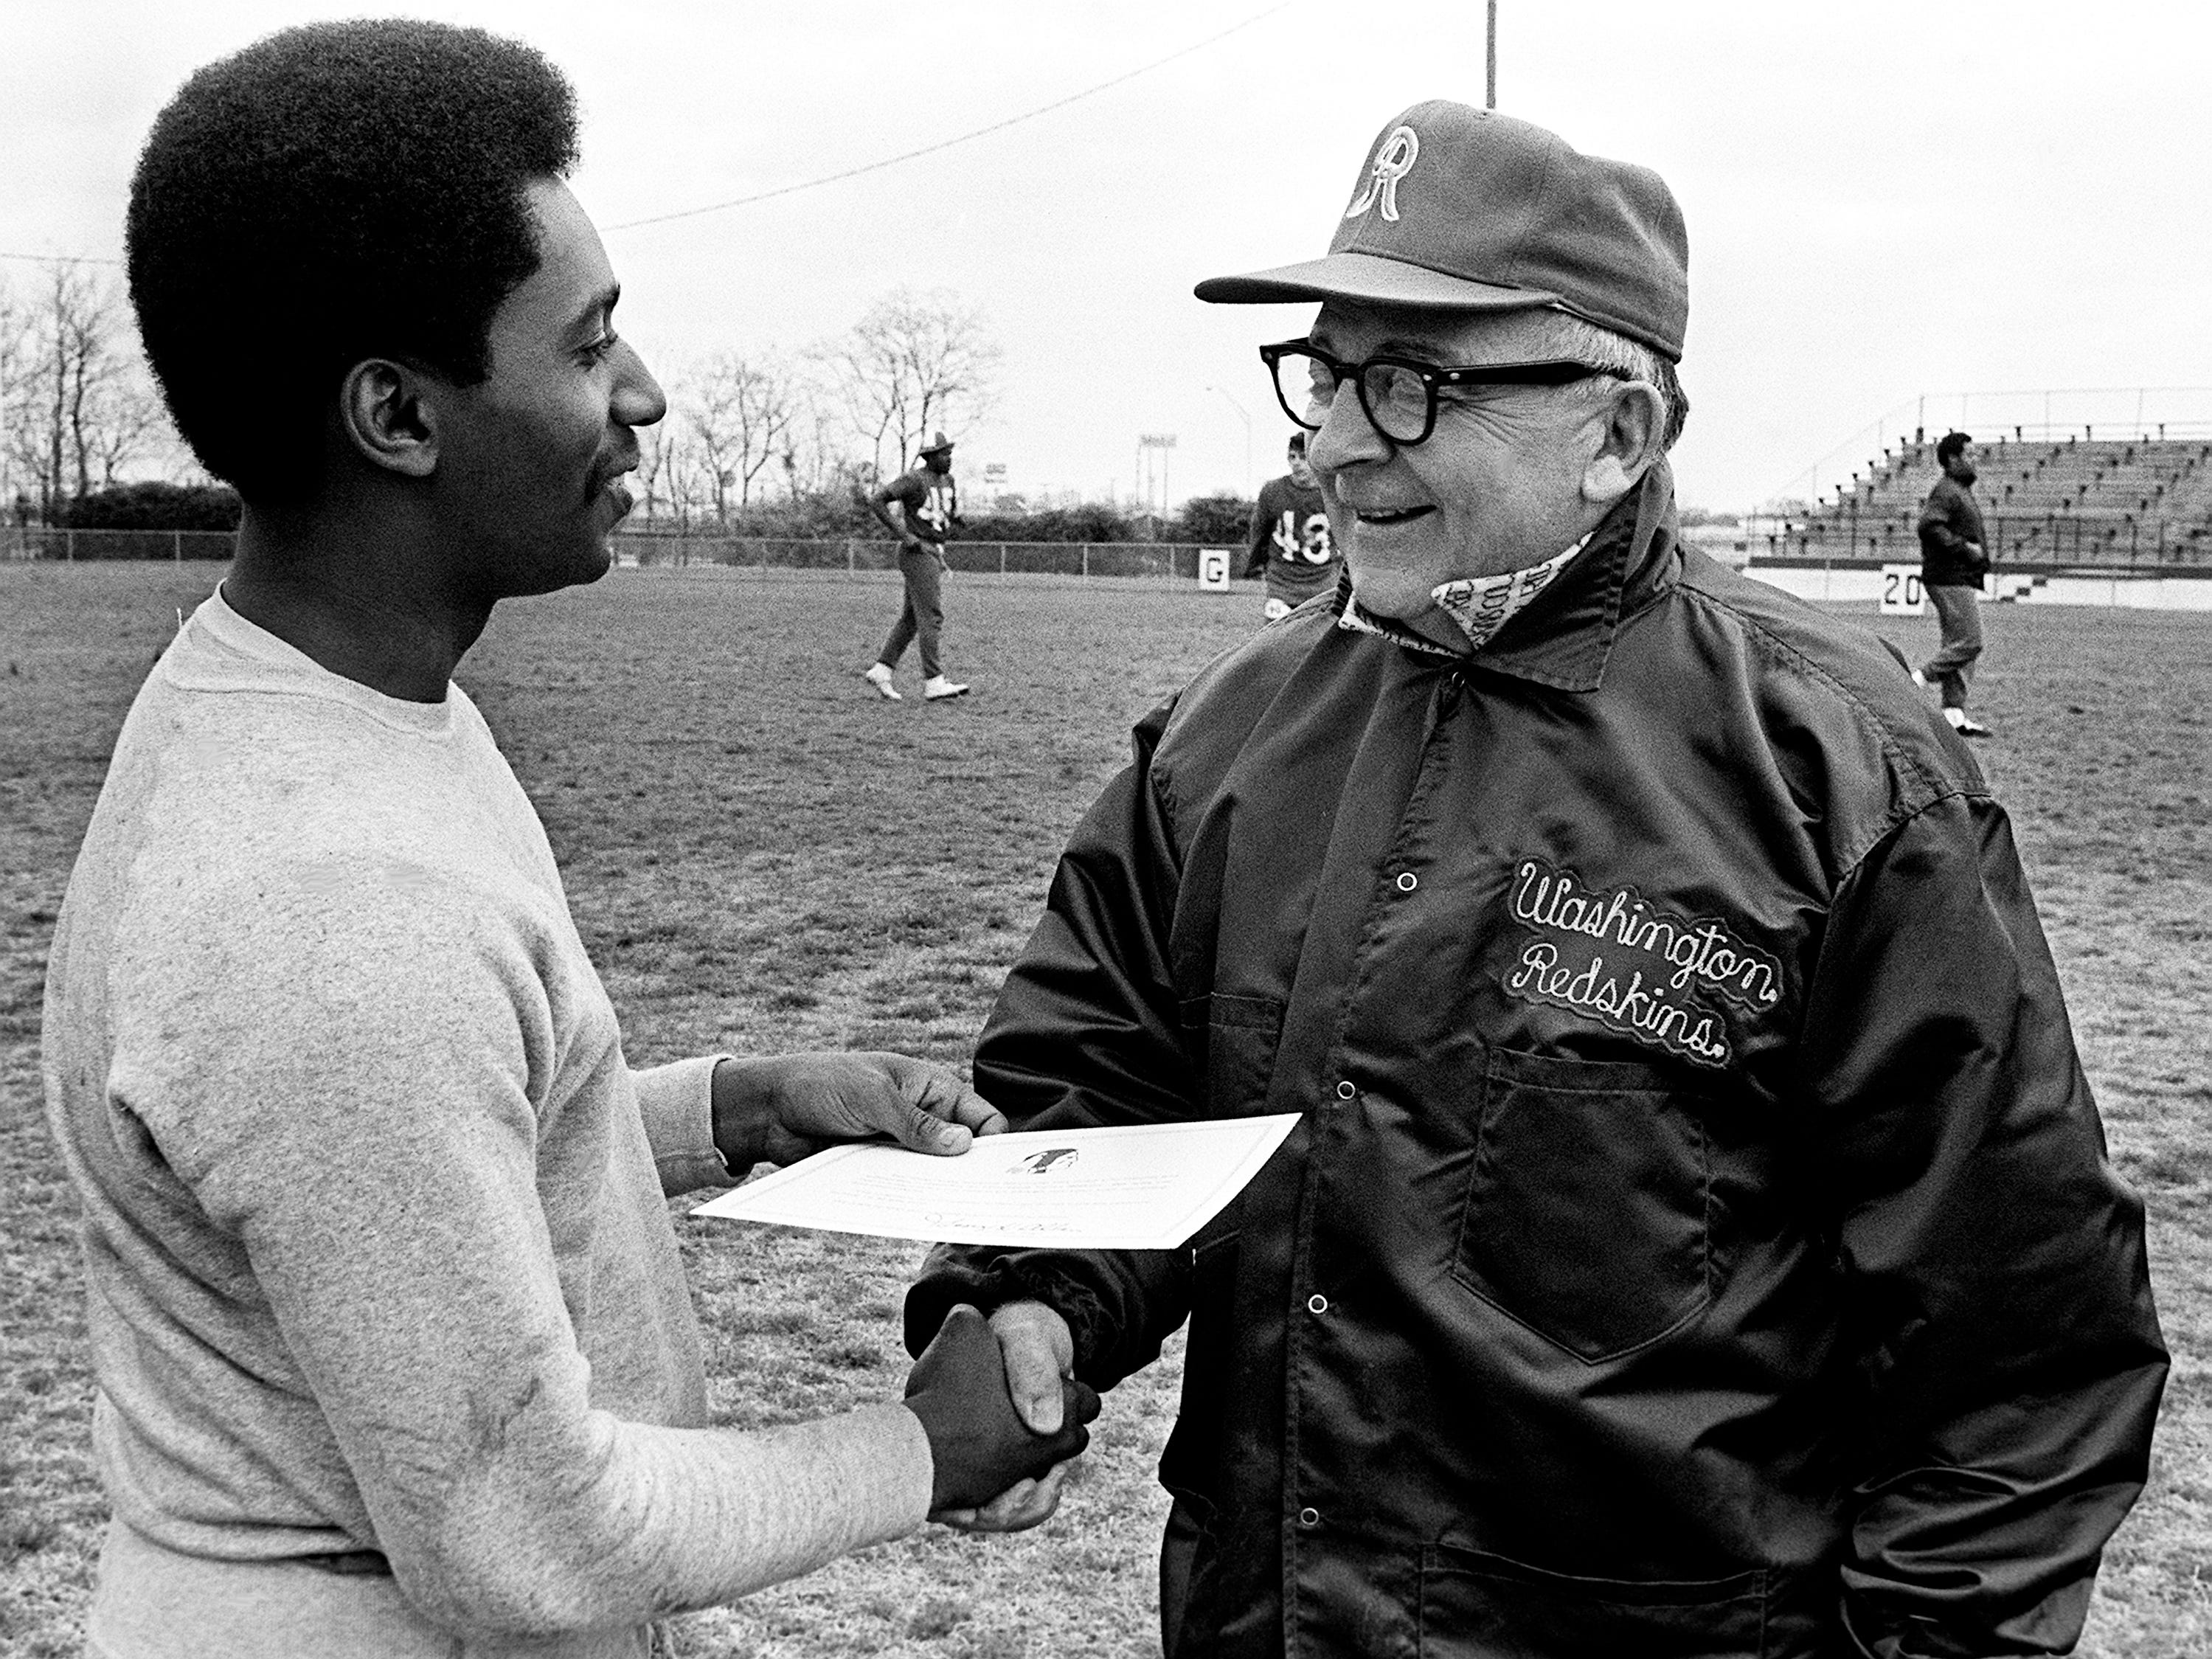 Washington Redskins player personnel director Tim Temerario, right, shakes hands with Tennessean reporter Dwight Lewis, who appeared at Overton High School on March 16, 1974, to participate in the free agent tryout camp sponsored by the Redskins. Lewis also was presented with a certificate saying he does not have the potential to help the Redskins at this time.